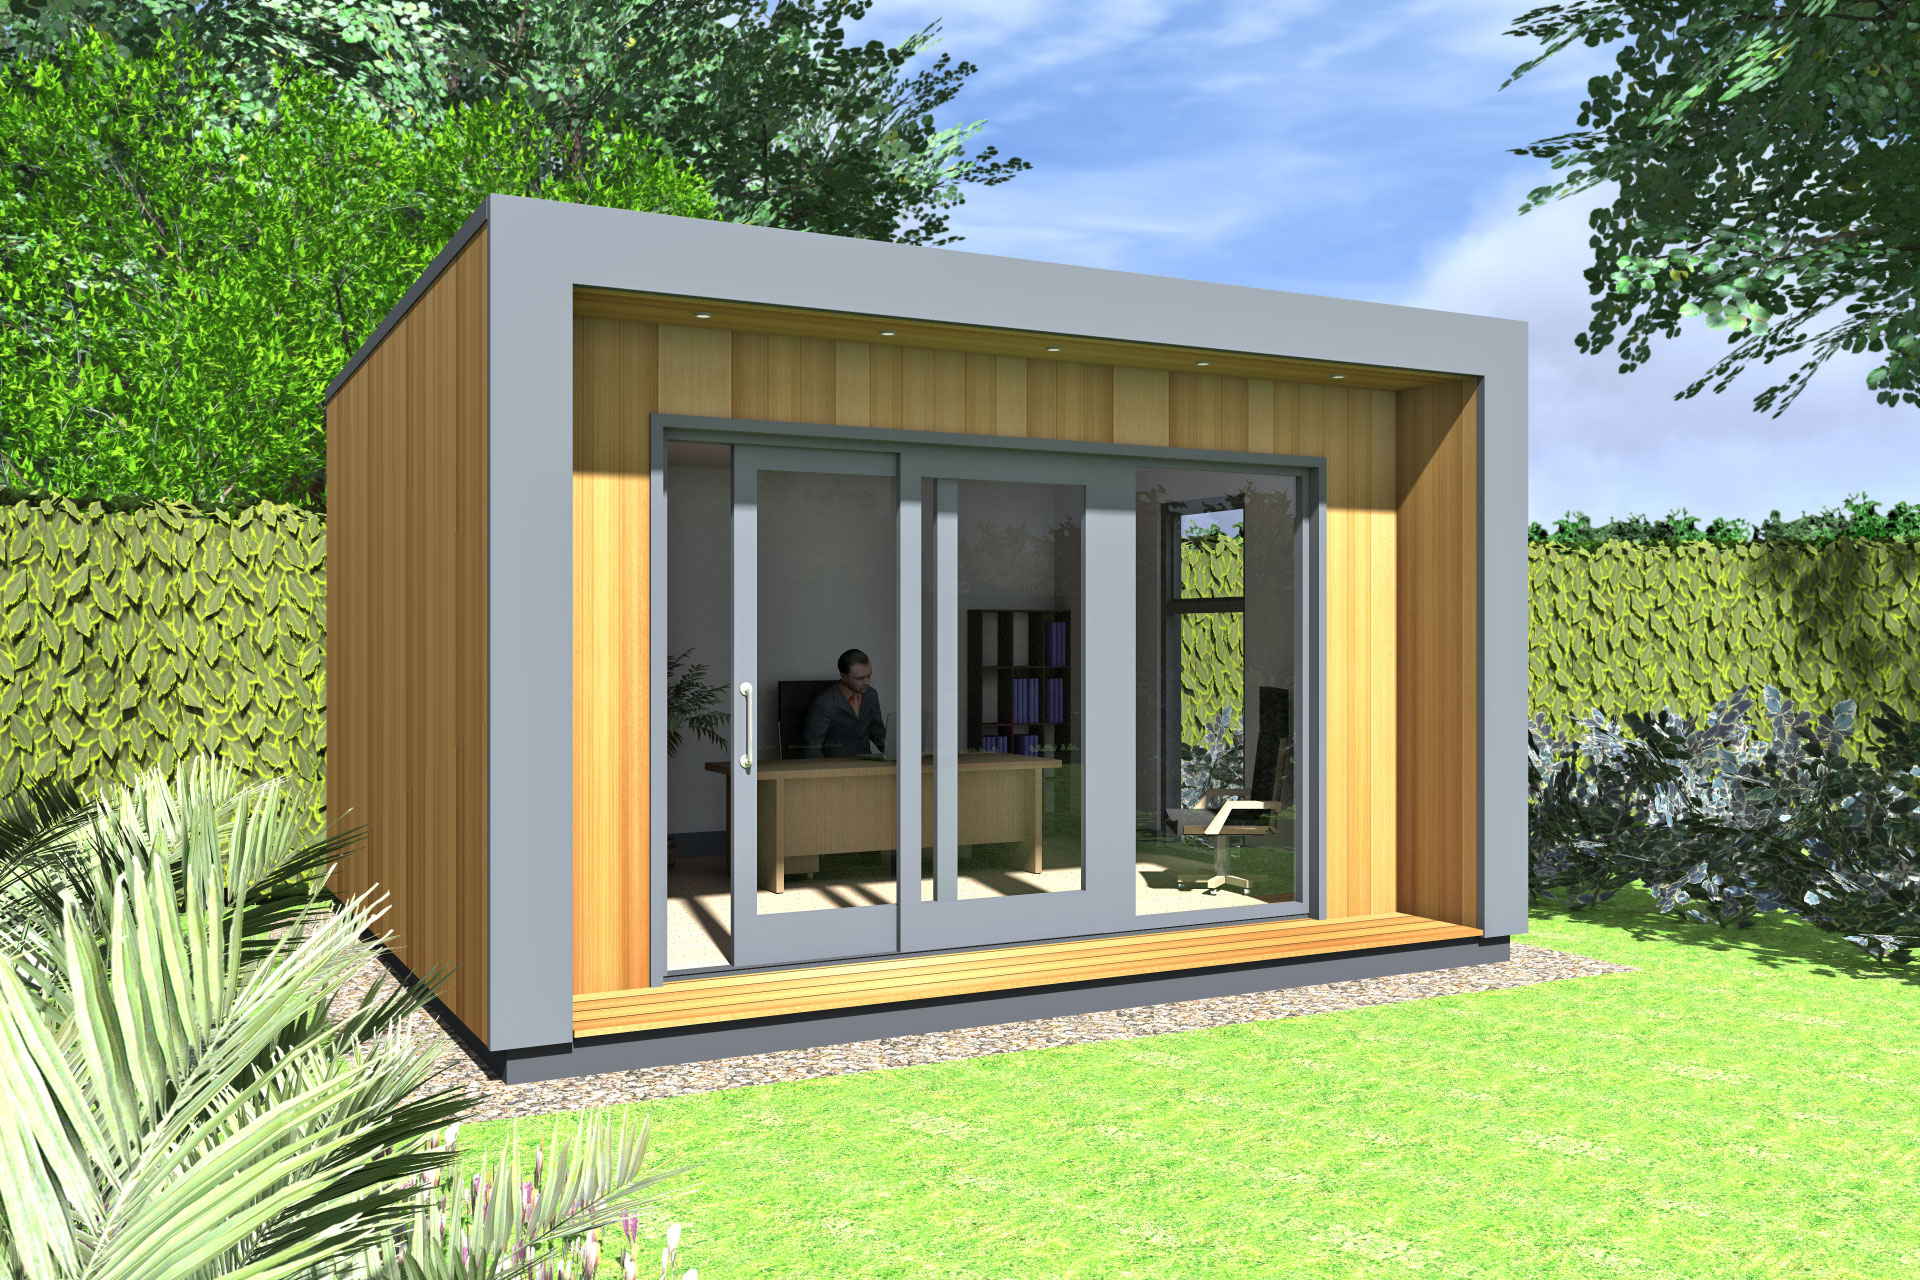 Office pods ideas gallery garden office ideas gallery for Garden office ideas uk